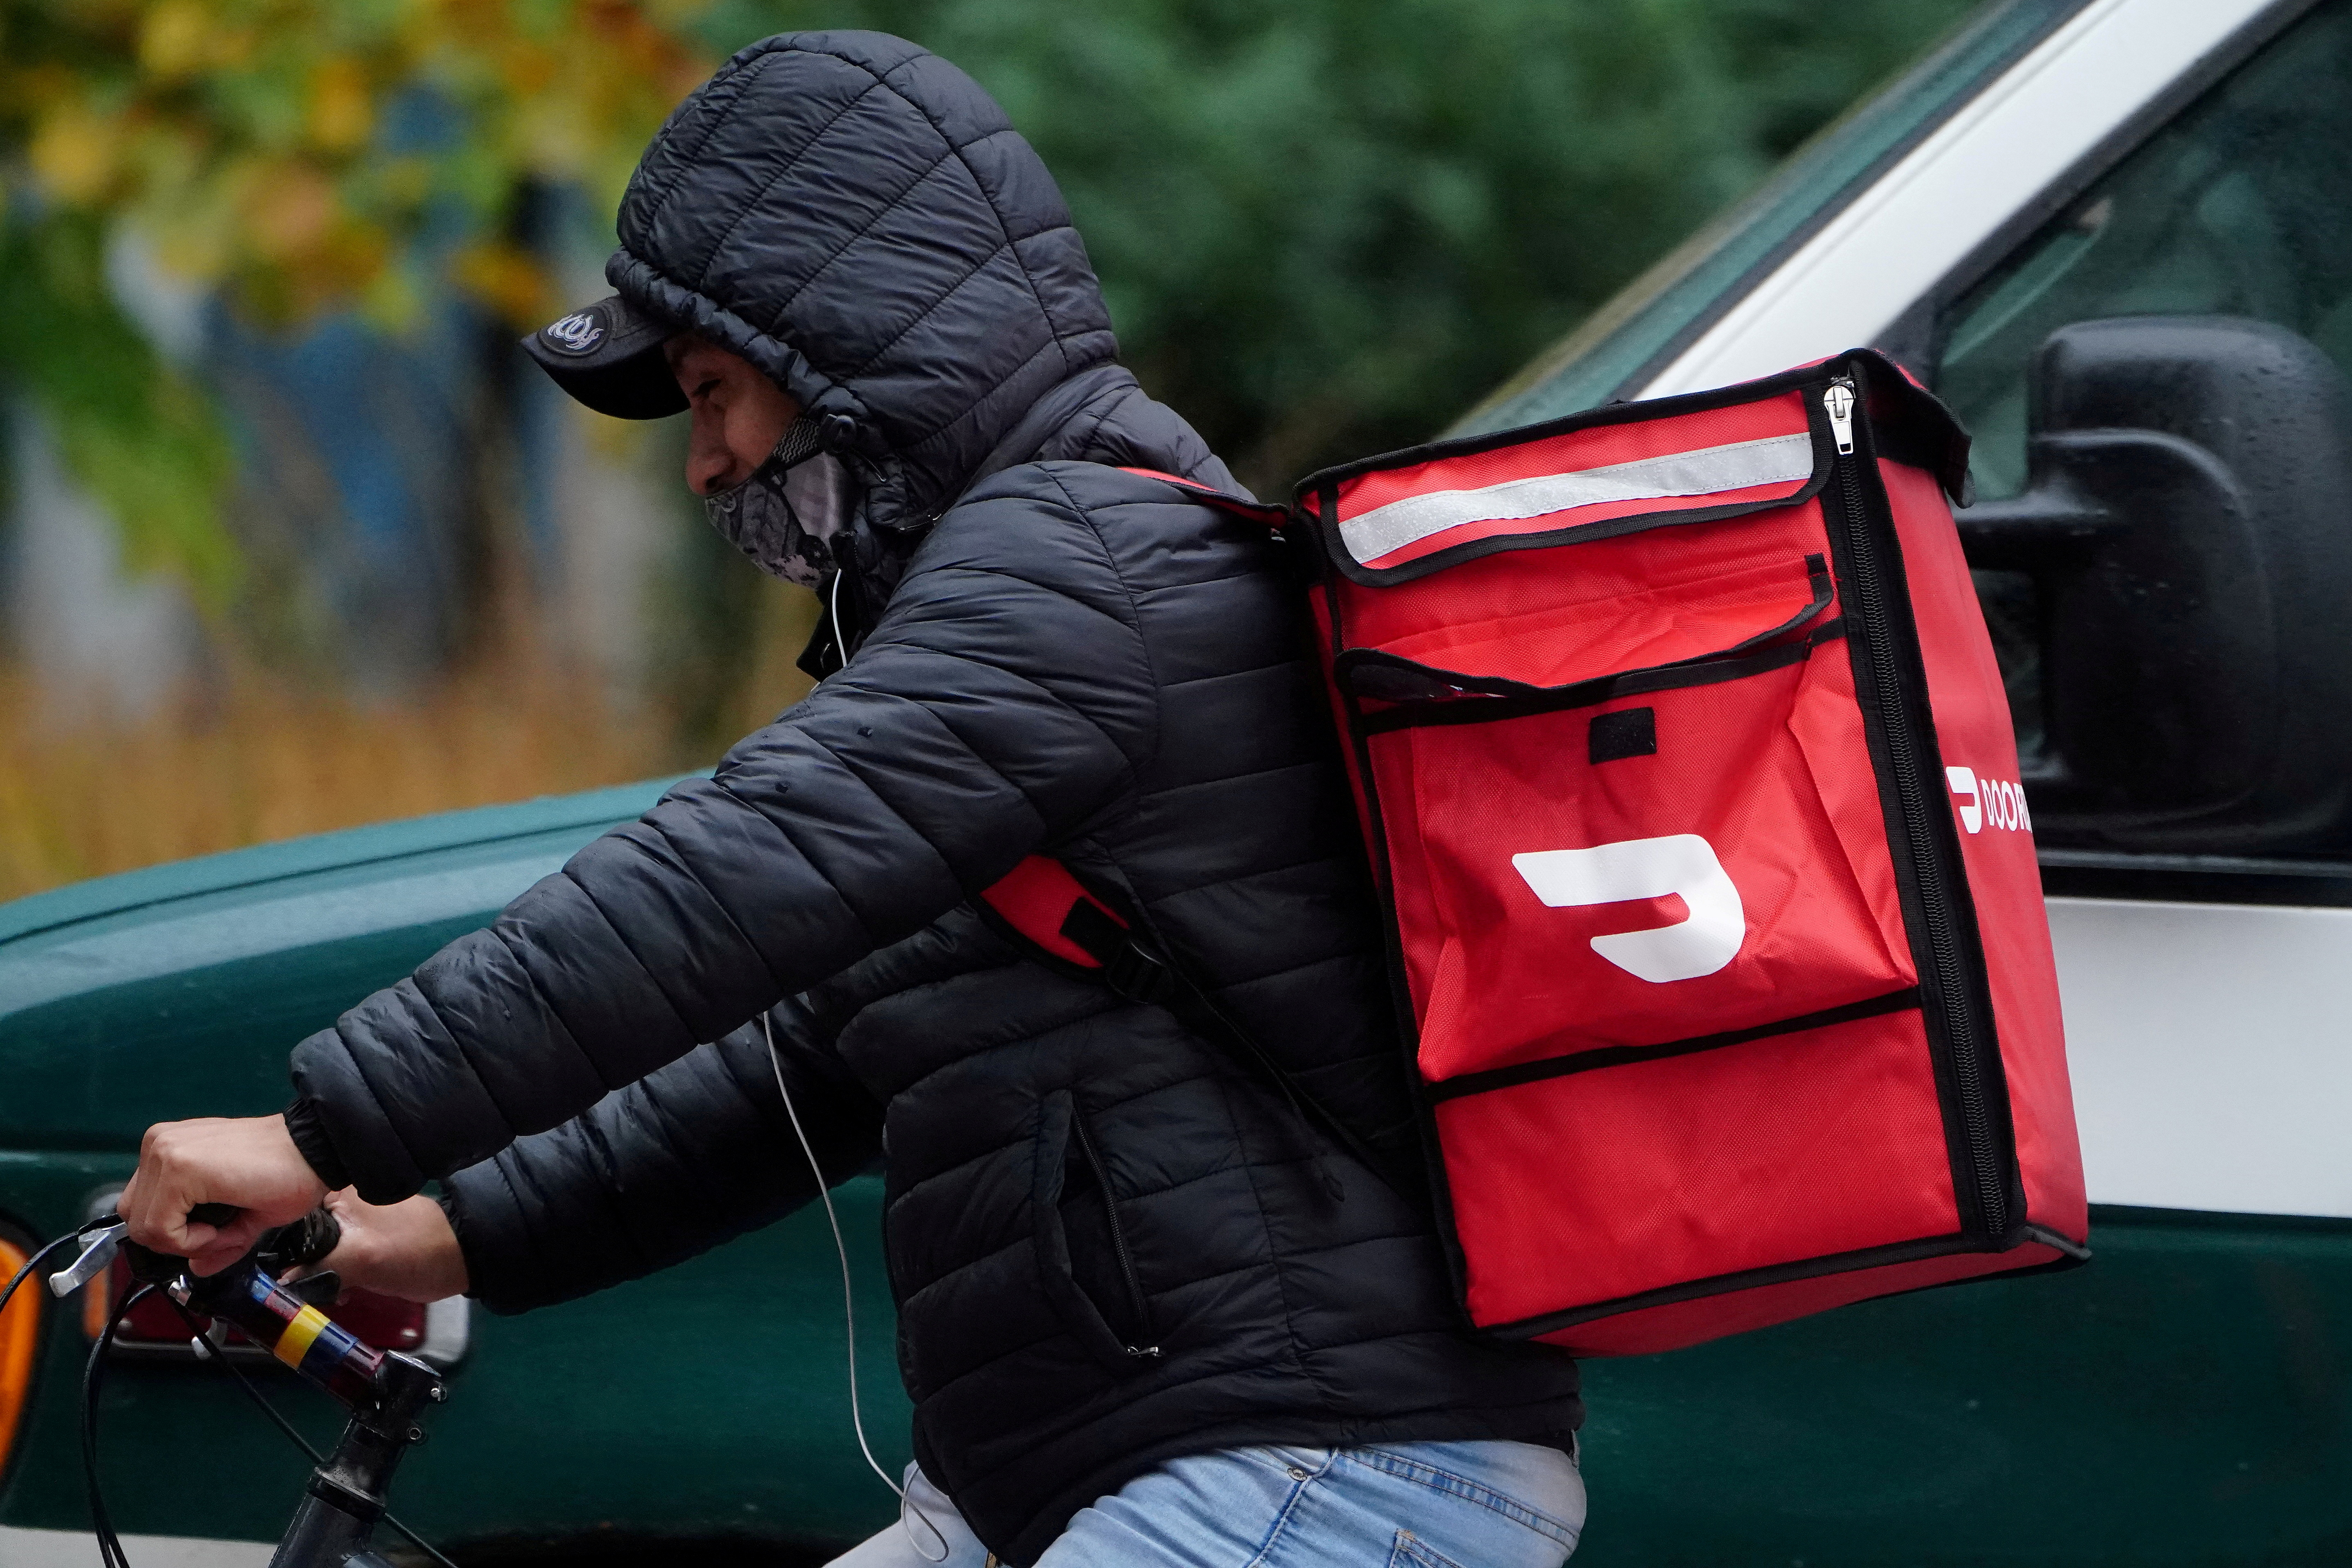 A delivery person for Doordash rides his bike in the rain during the coronavirus disease (COVID-19) pandemic in the Manhattan borough of New York City, New York, U.S., November 13, 2020. REUTERS/Carlo Allegri/File Photo